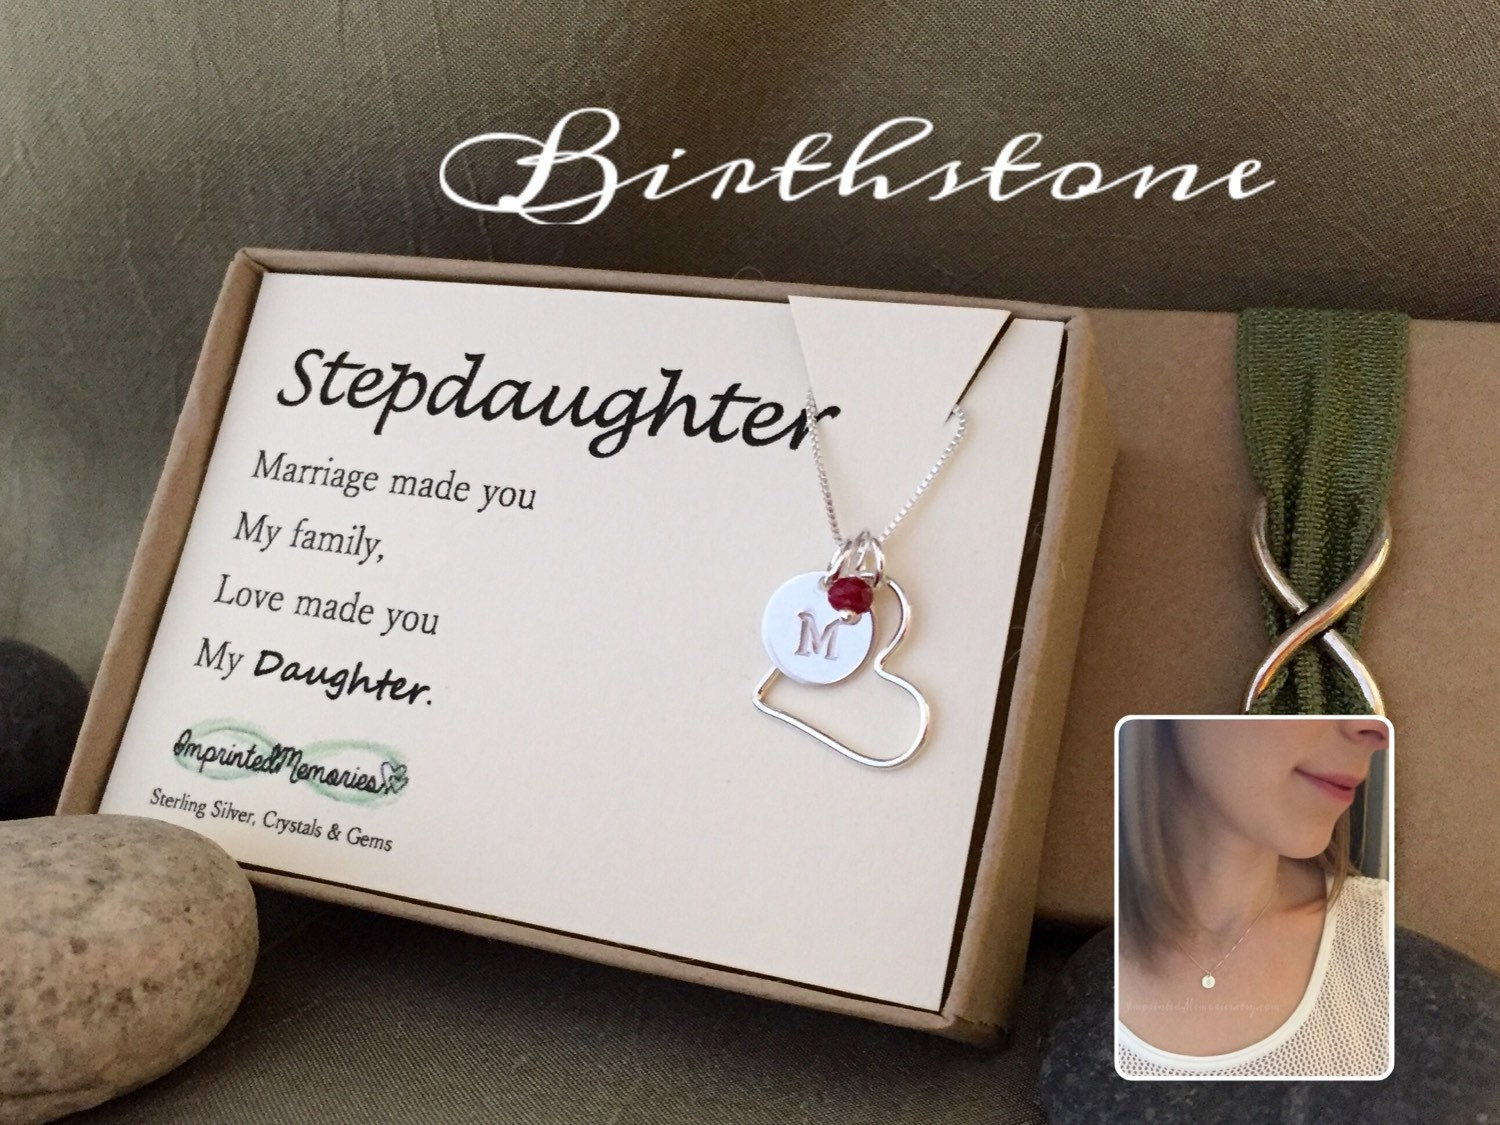 Wedding Gift For Our Daughter : Ideas Wedding Gift For Daughter stepdaughter gift new wedding by ...